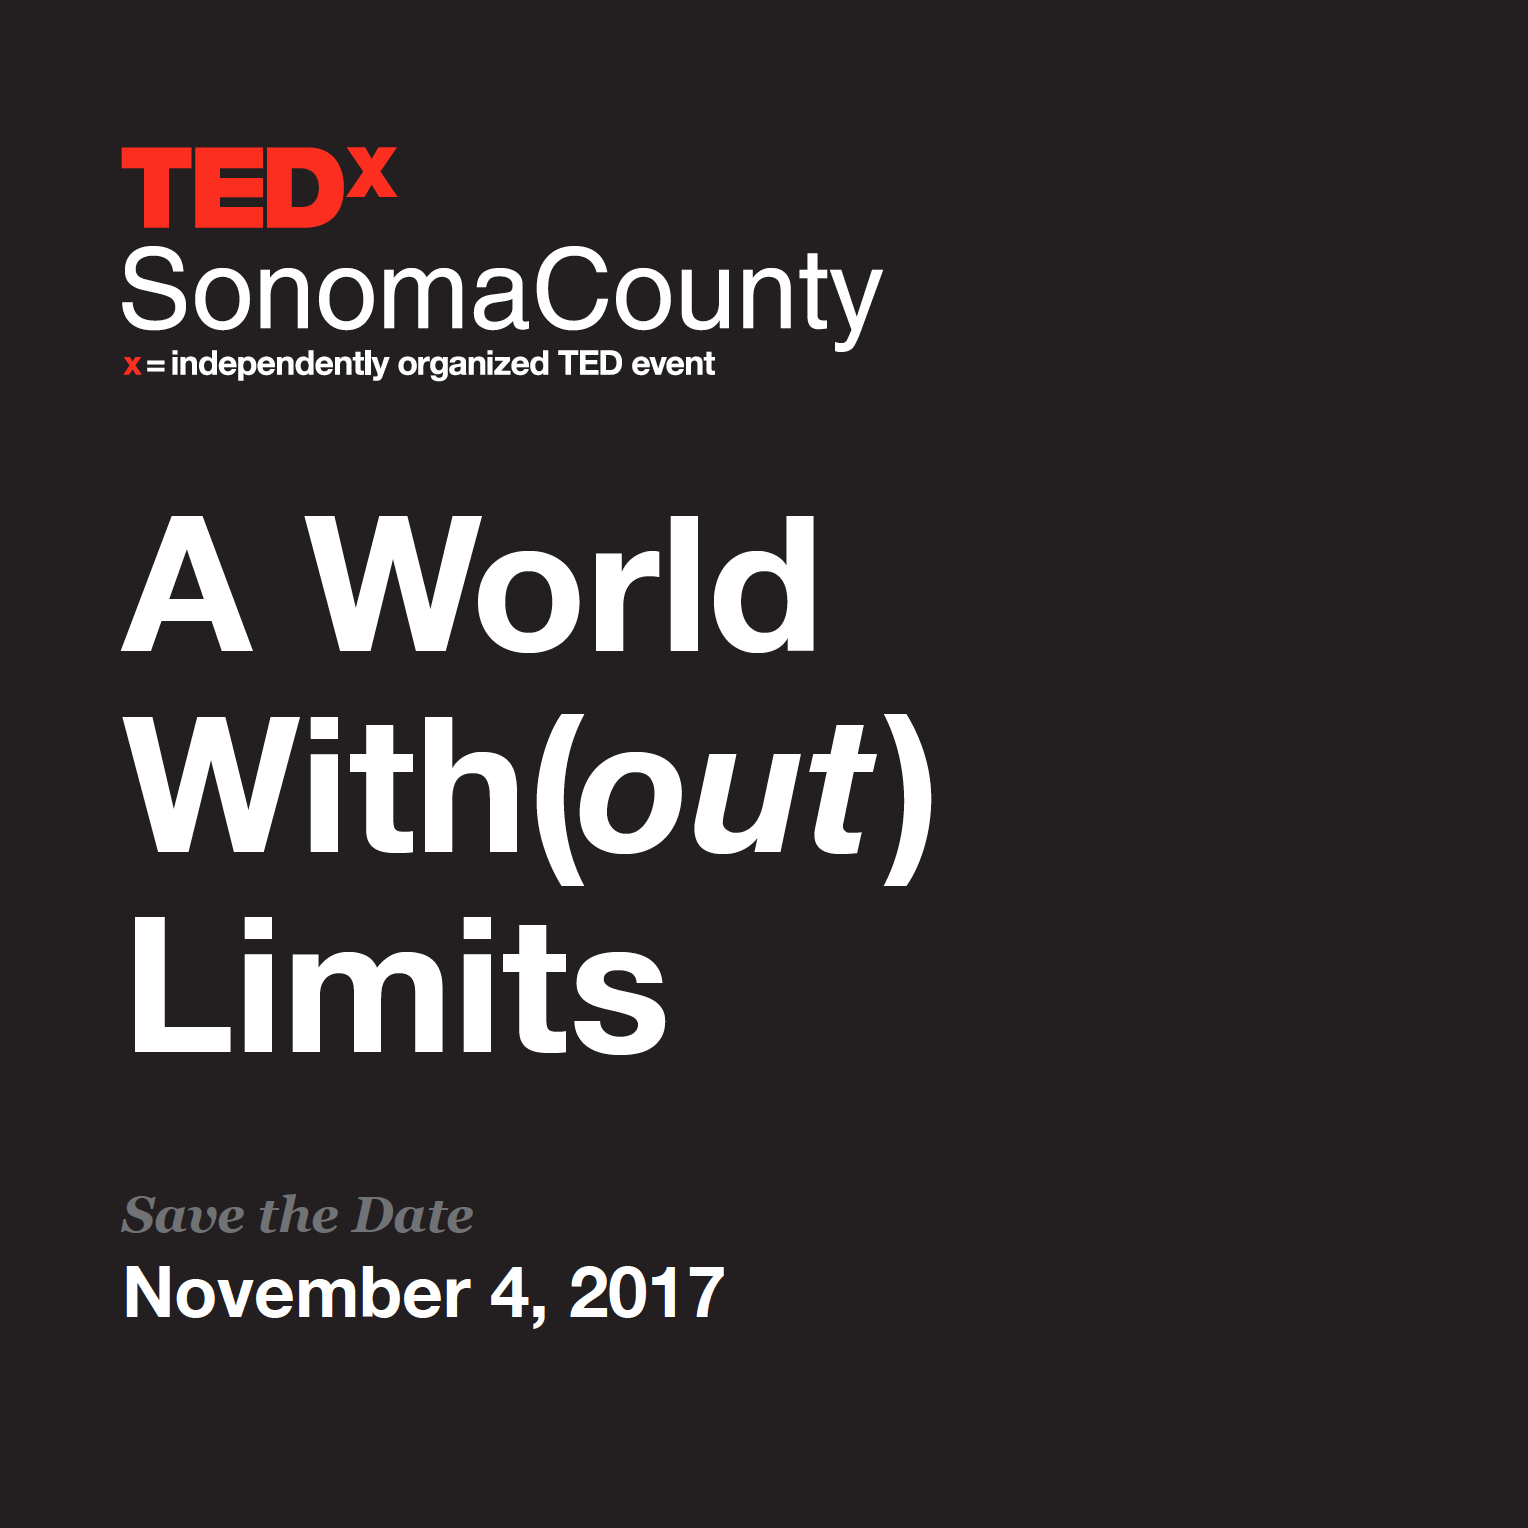 A World With(out) Limits Save the Date